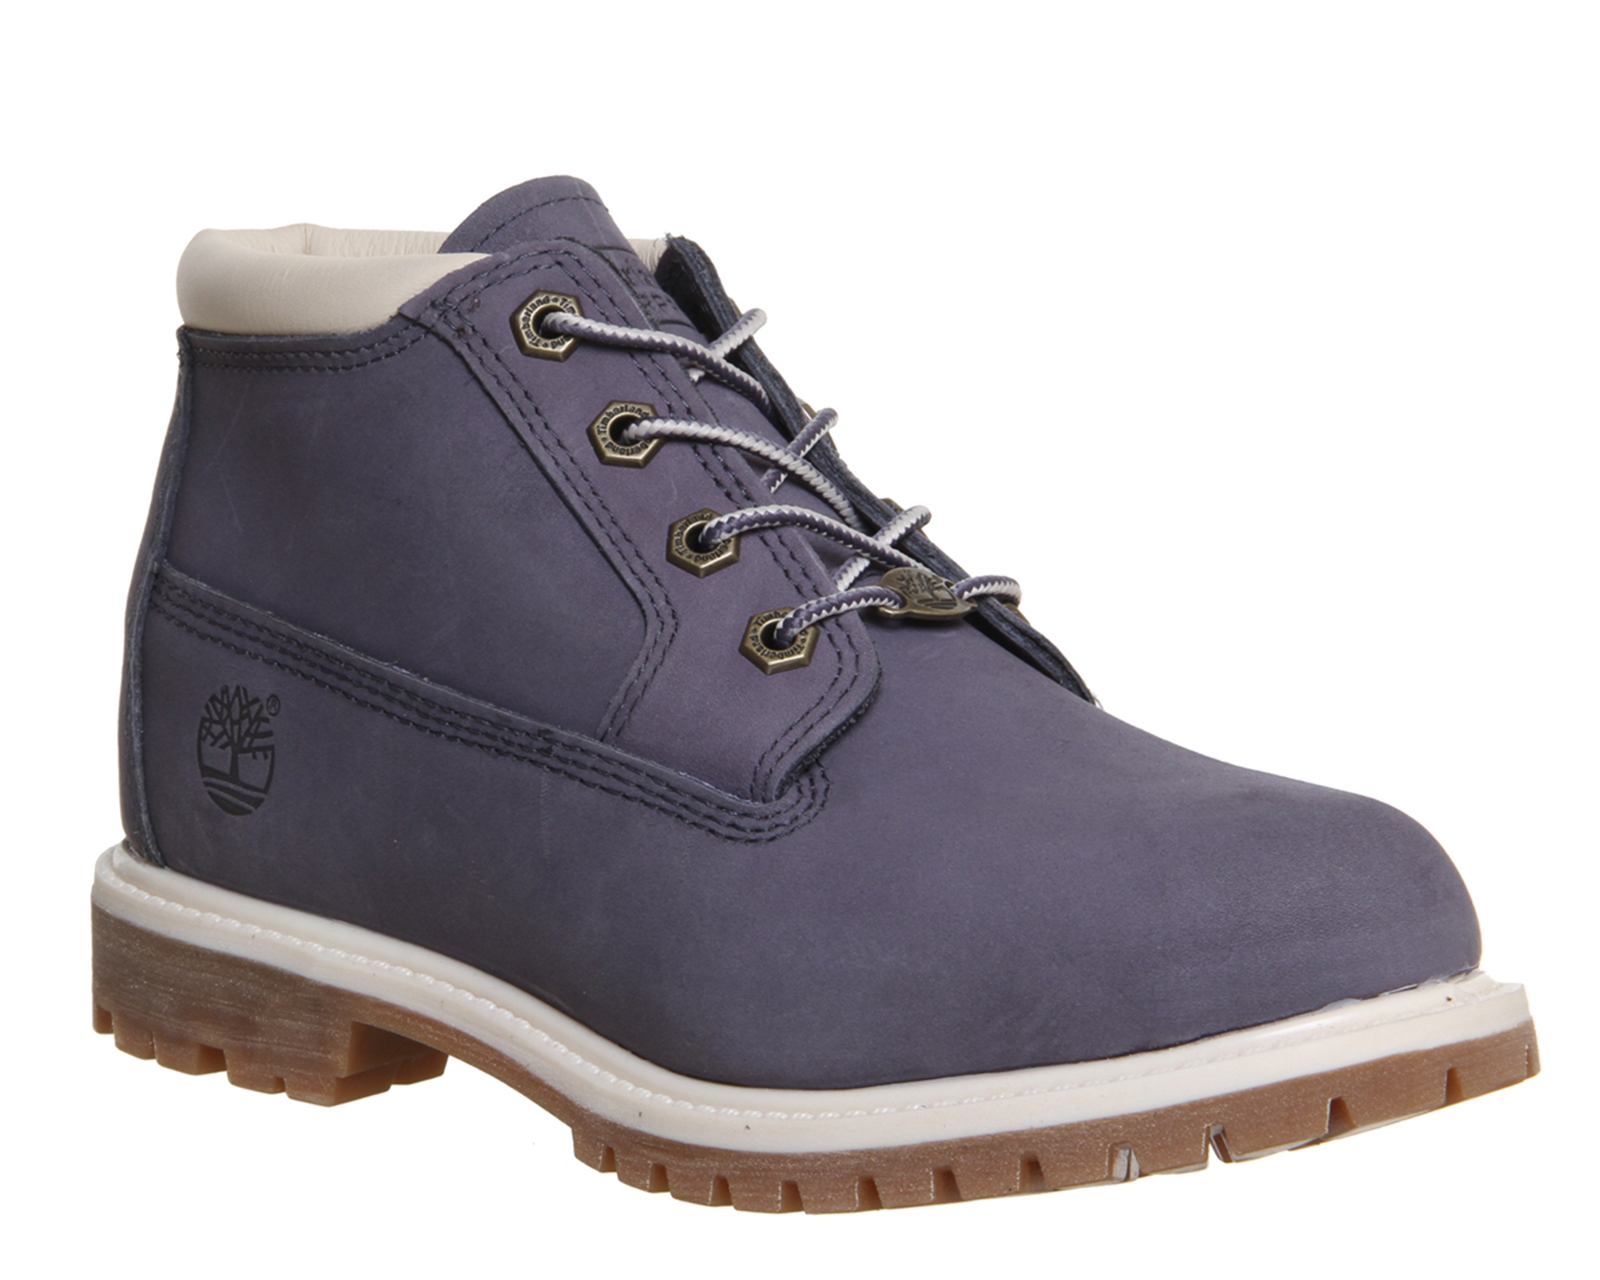 timberland nellie chukka double waterproof boot in gray. Black Bedroom Furniture Sets. Home Design Ideas